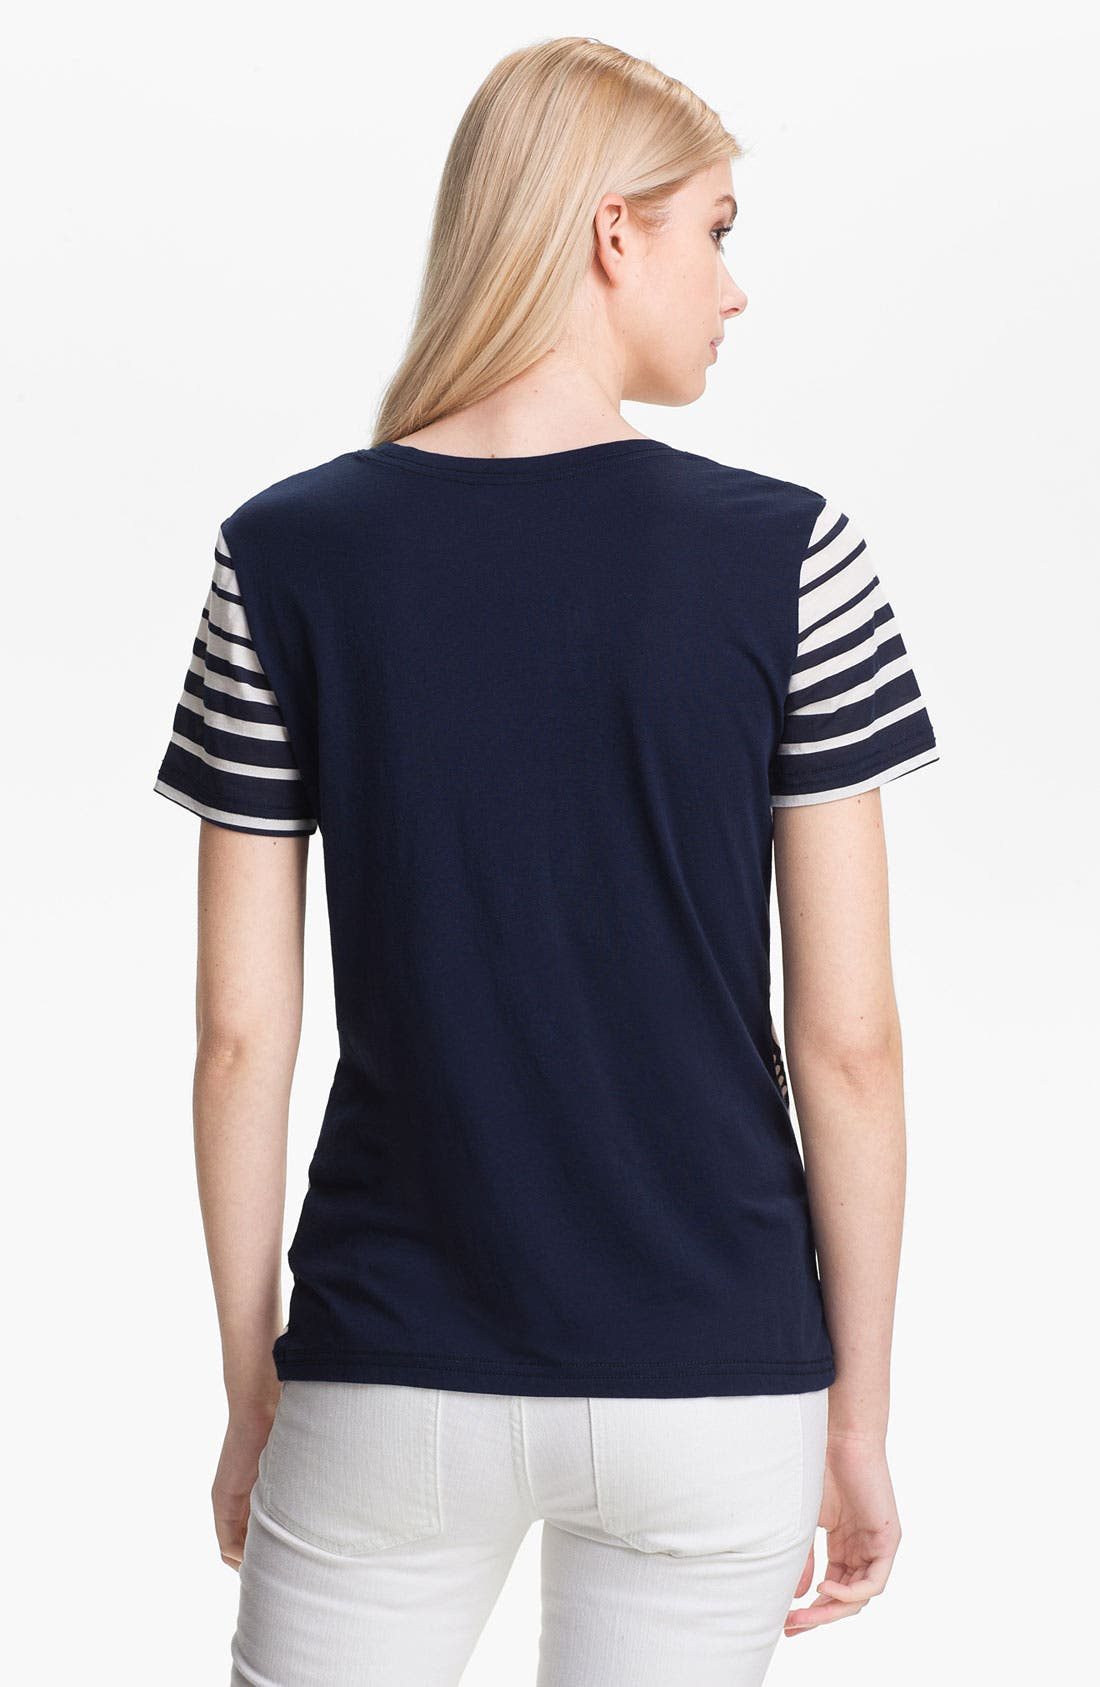 Alternate Image 2  - Tory Burch 'Karin' Tee